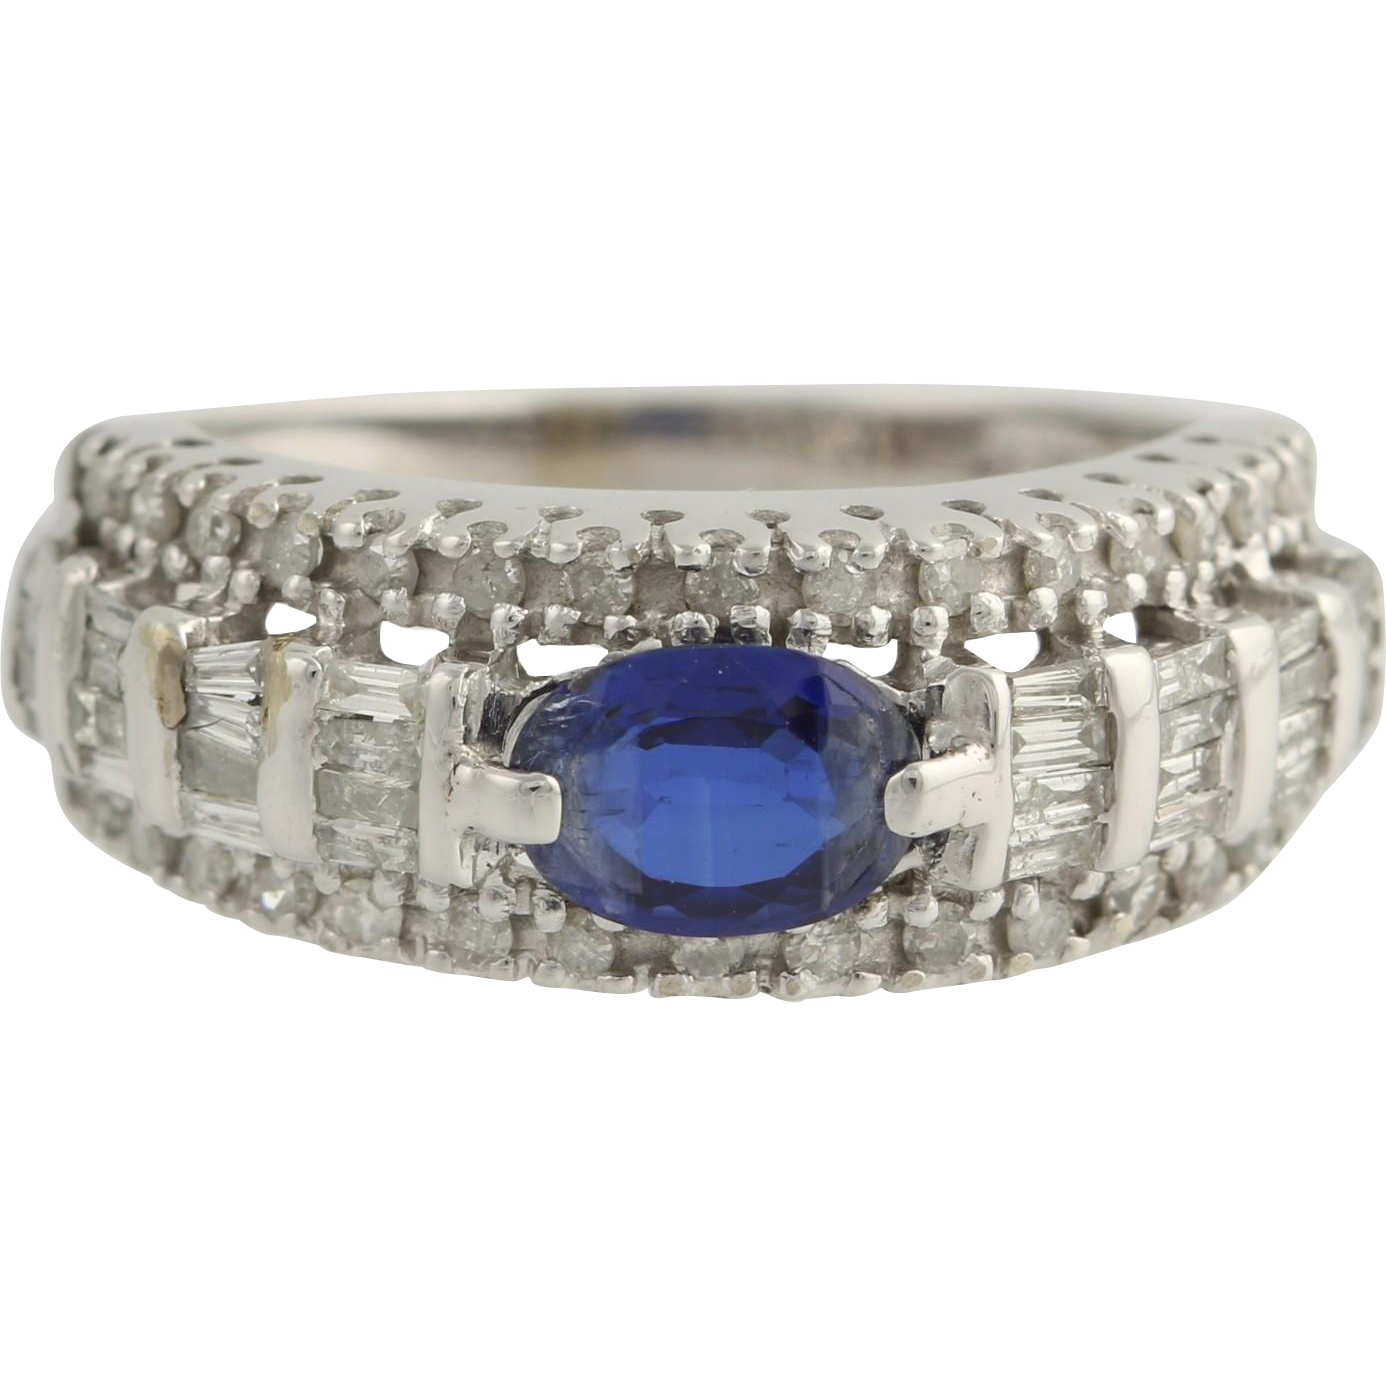 Sapphire & Diamond Cocktail Band - 10k White Gold Anniversary Genuine 1.76ctw